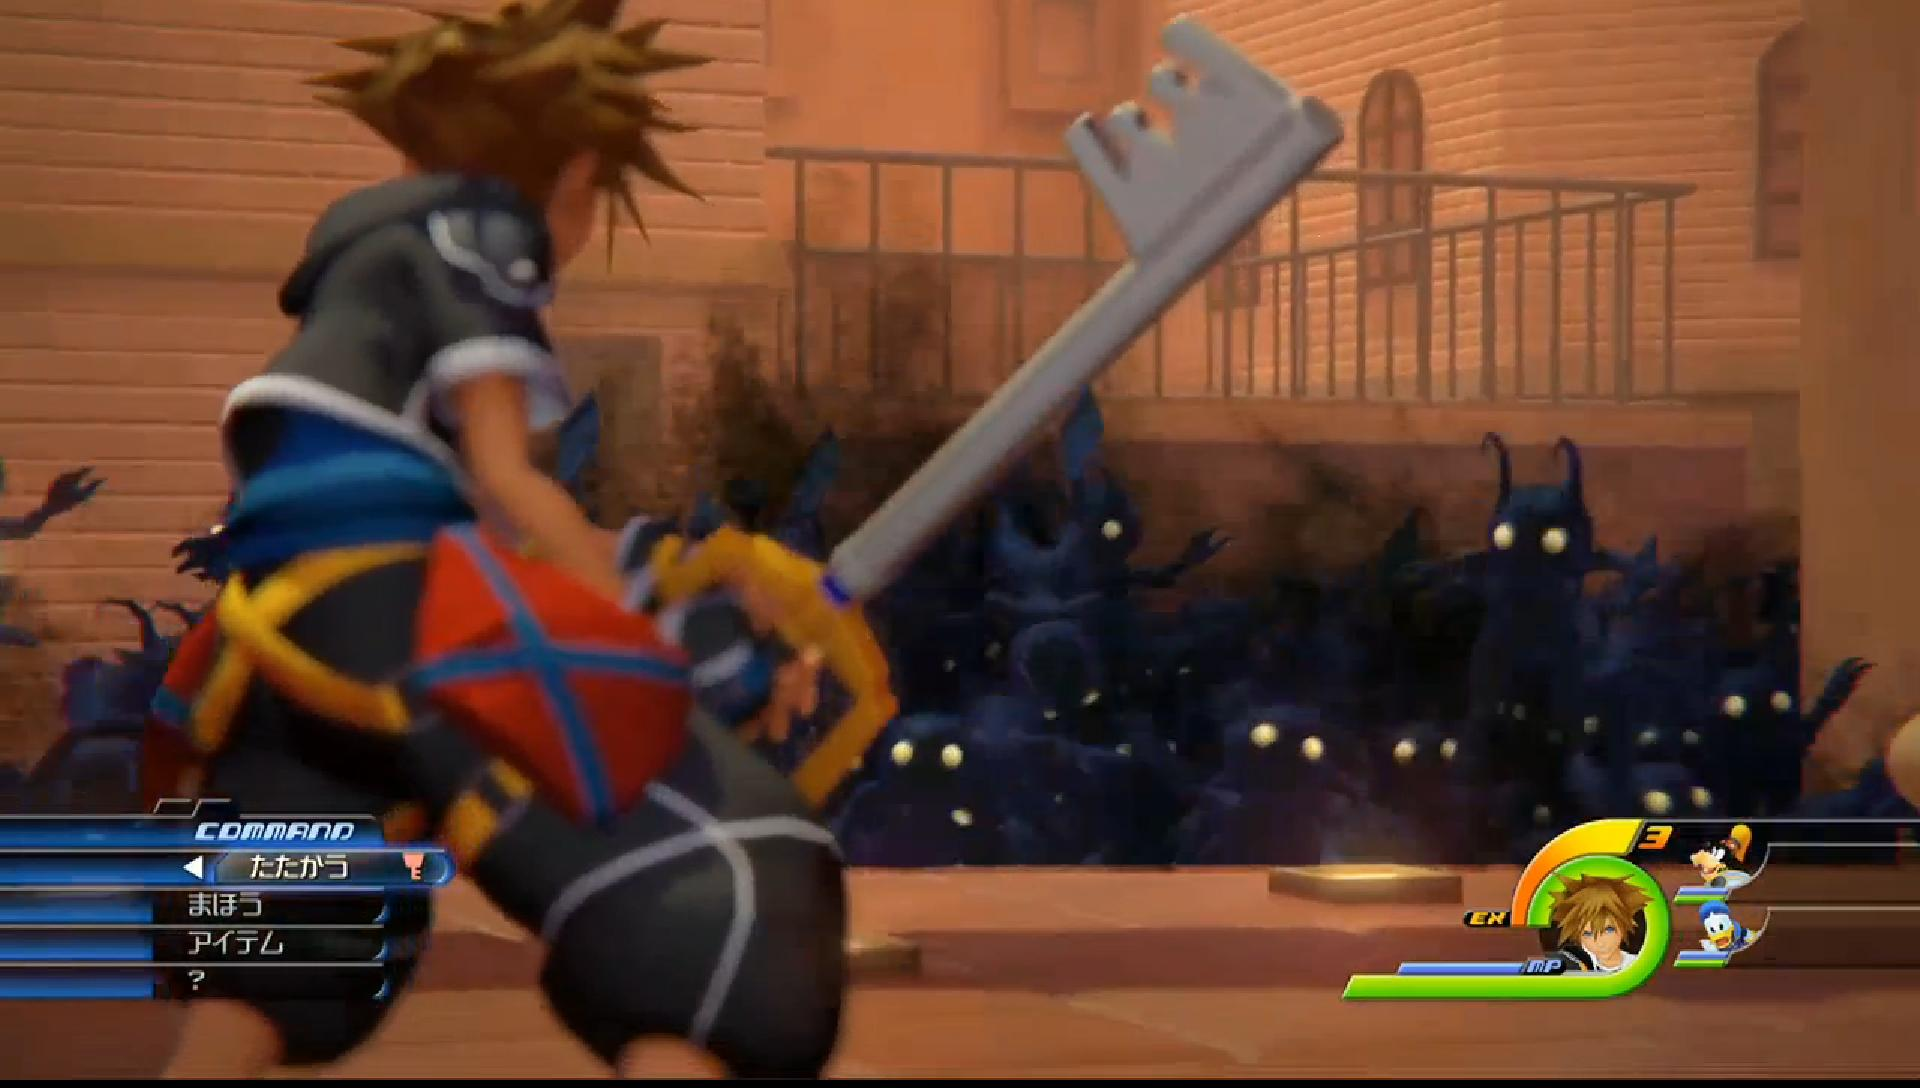 Gameplay shown in the trailer looks fantastic and not a triangle button trigger to be seen.